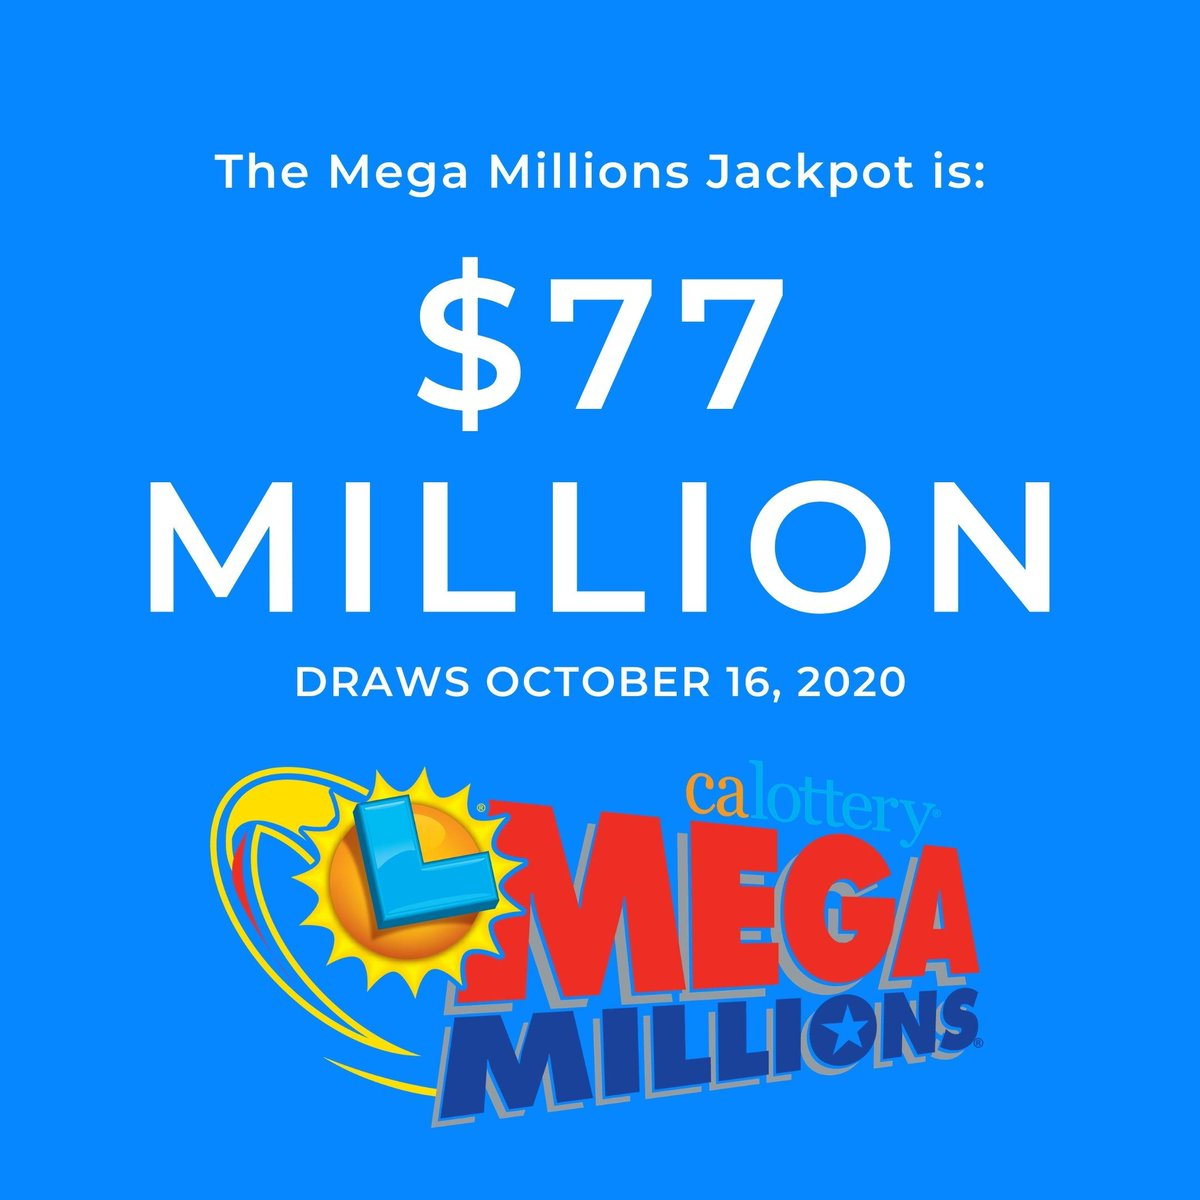 Tonight's Mega Millions jackpot is $77 million dollars! What would you do with it? #MegaMillions #JackpotAlert #calottery https://t.co/Nc8zXC8vW2